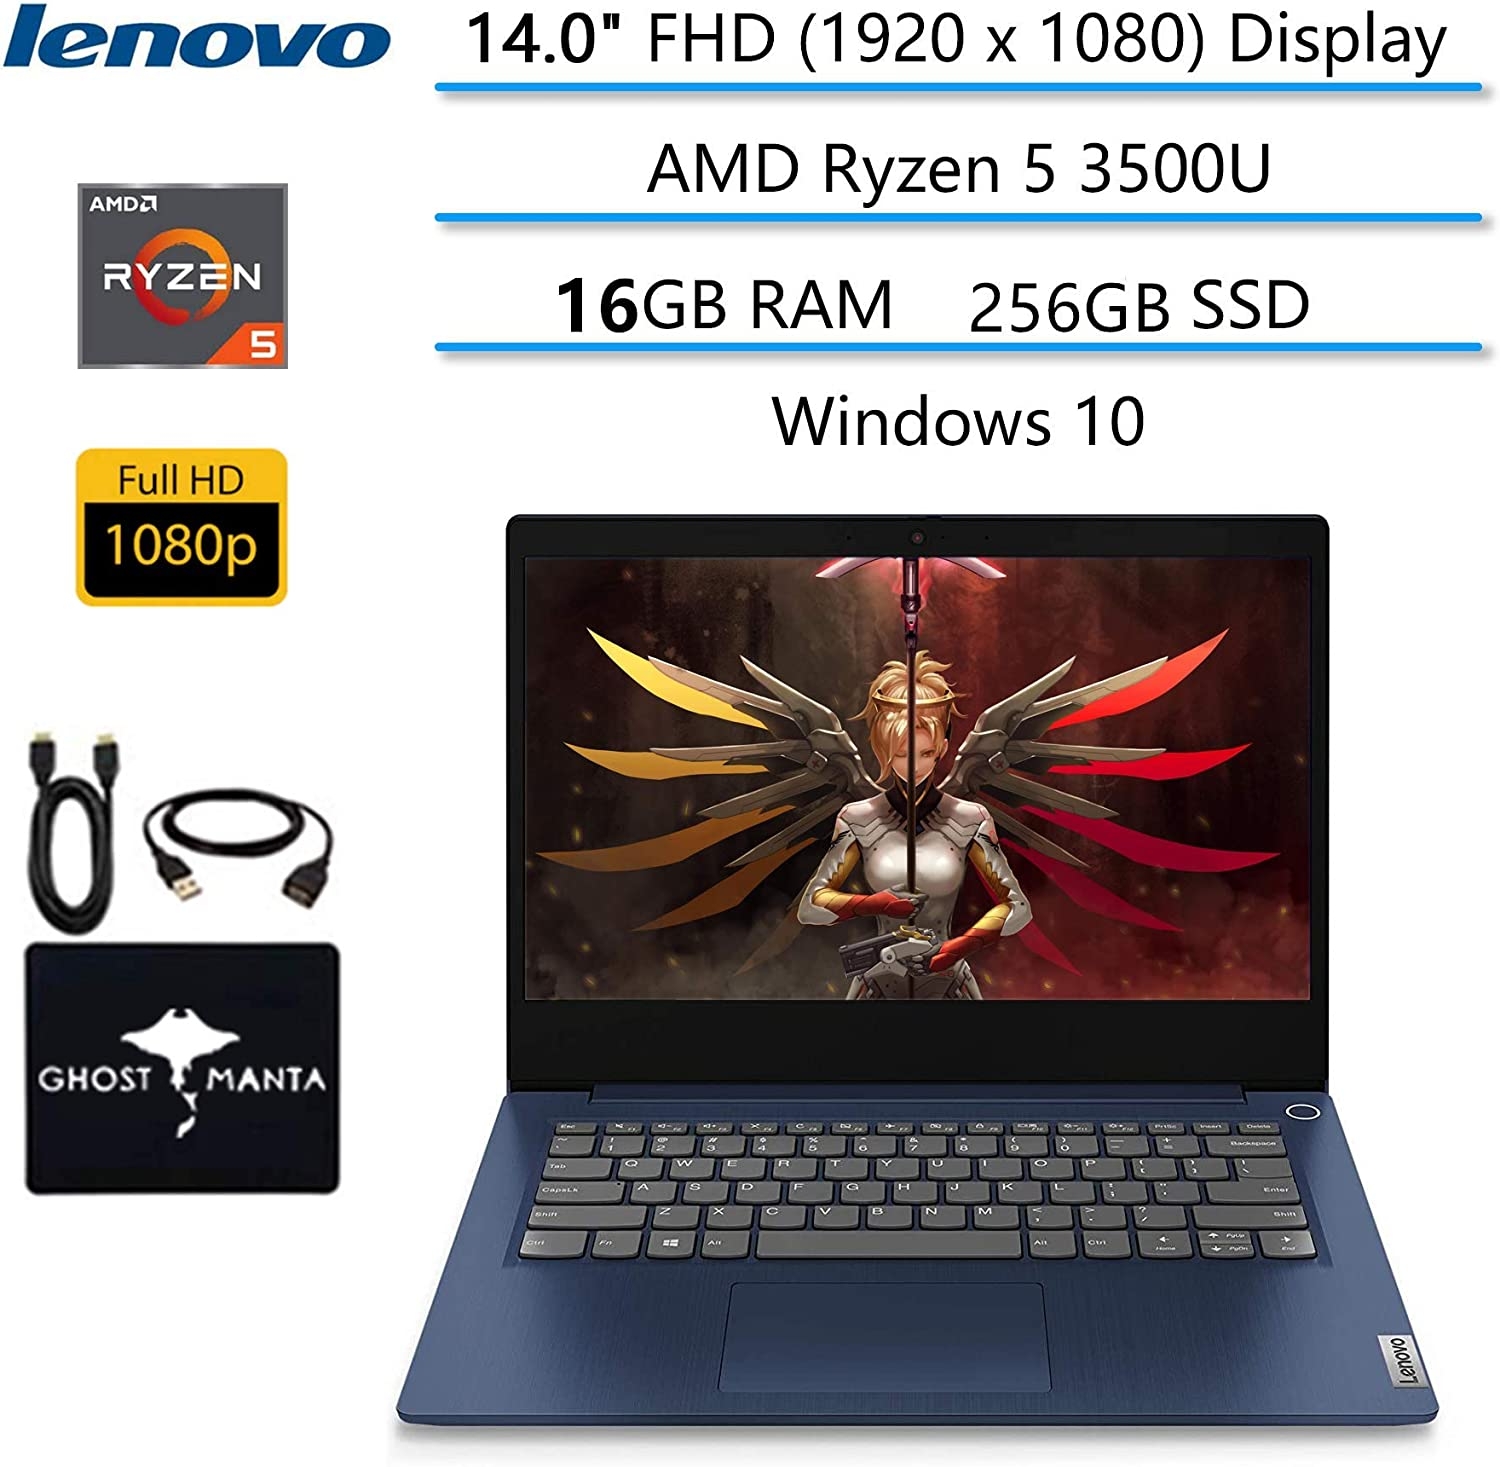 "2020 Newest Lenovo IdeaPad 14"" FHD Business Laptop Computer, AMD Ryzen 5 3500U(Beat i7-8550U), AMD Radeon Vega 8, HDMI Bluetooth, Windows 10 w/Ghost Manta Accessories (16GB RAM 